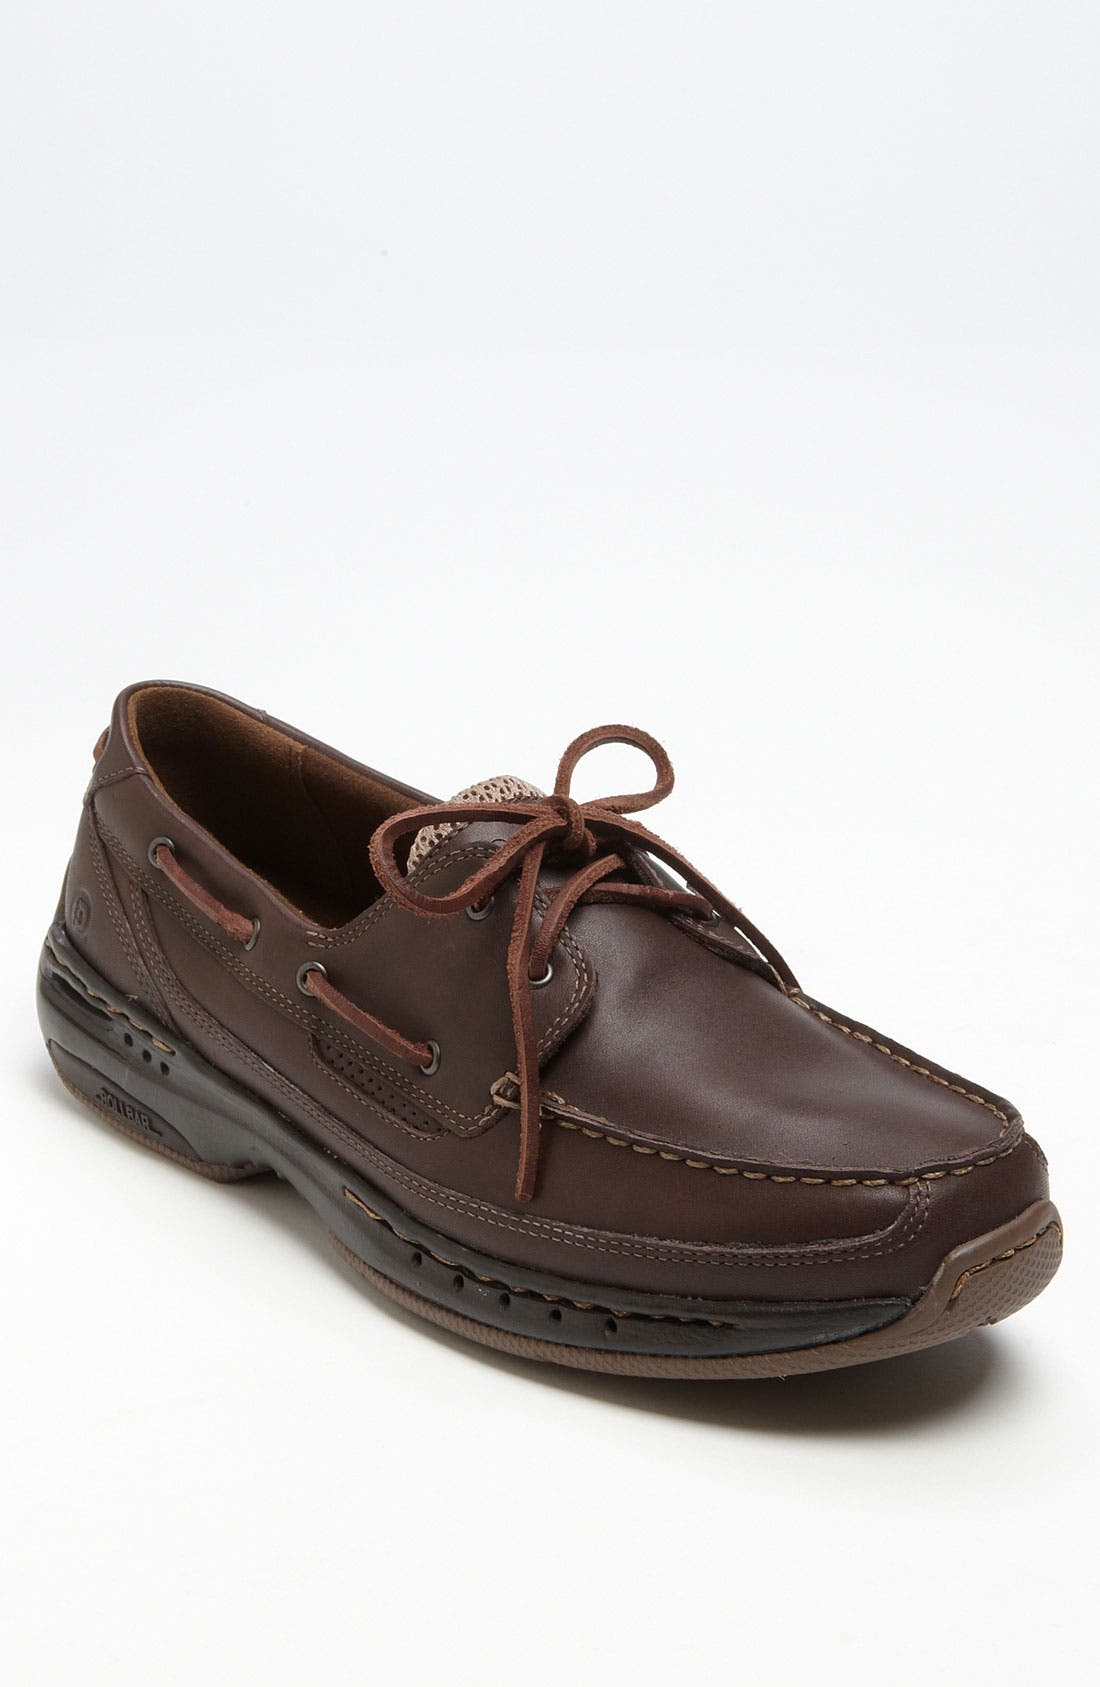 Alternate Image 1 Selected - Dunham 'Shoreline' Boat Shoe (Online Only)